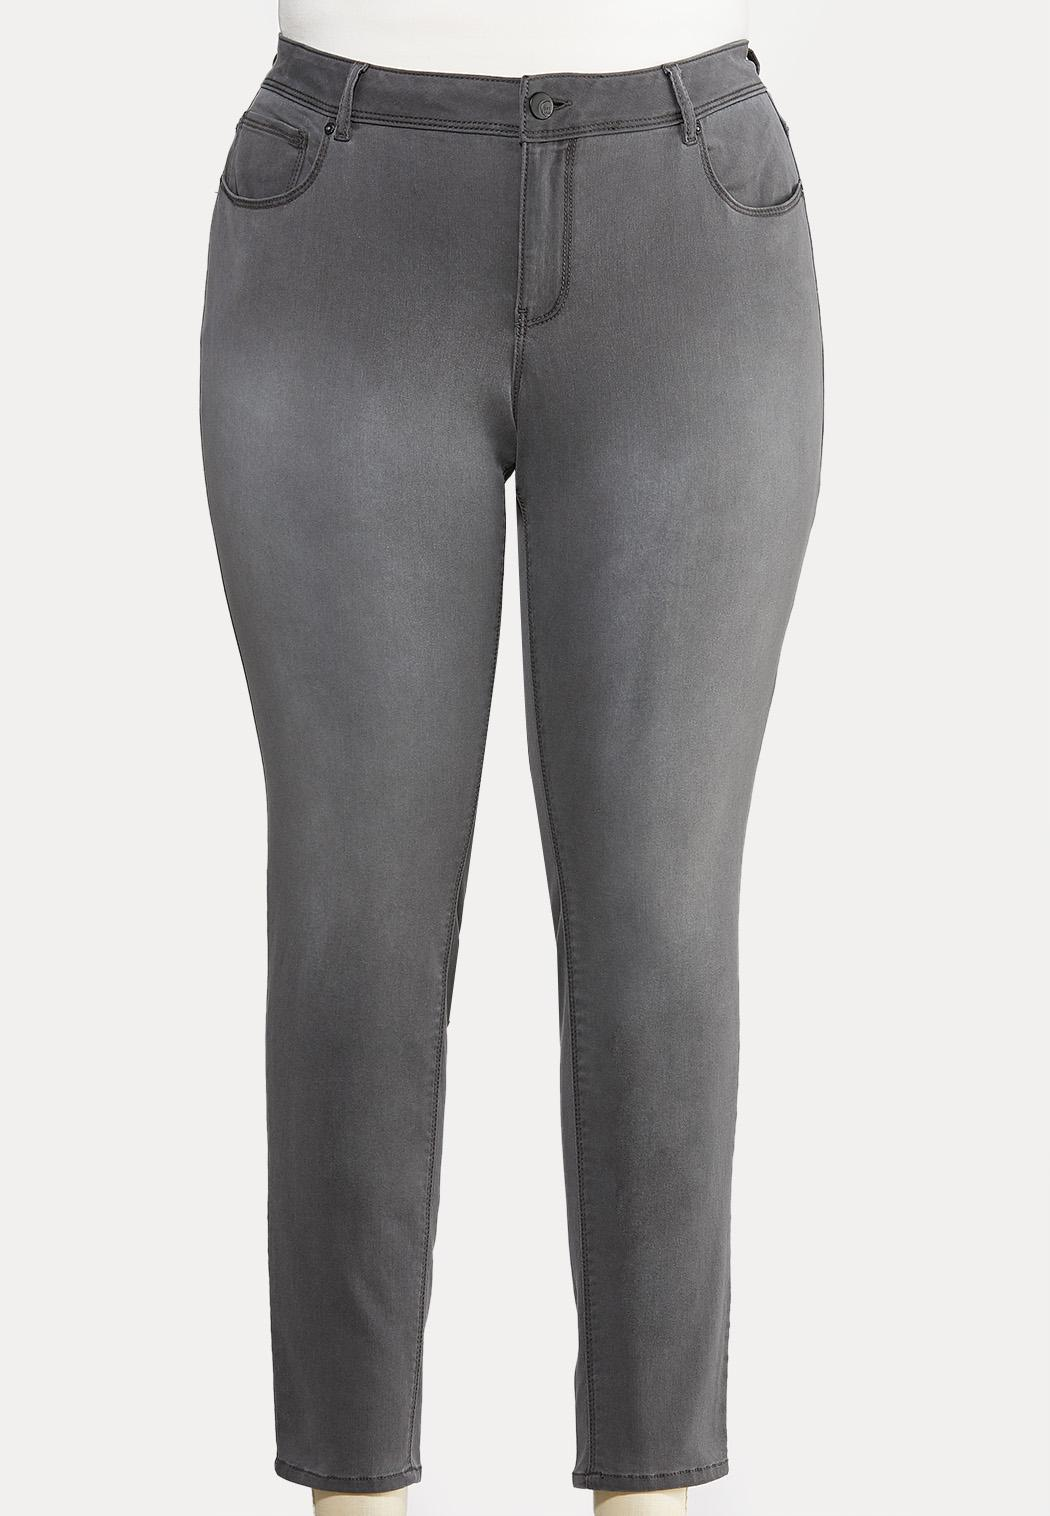 buy online hot-seeling original classic style Plus Size Gray Wash Jeggings